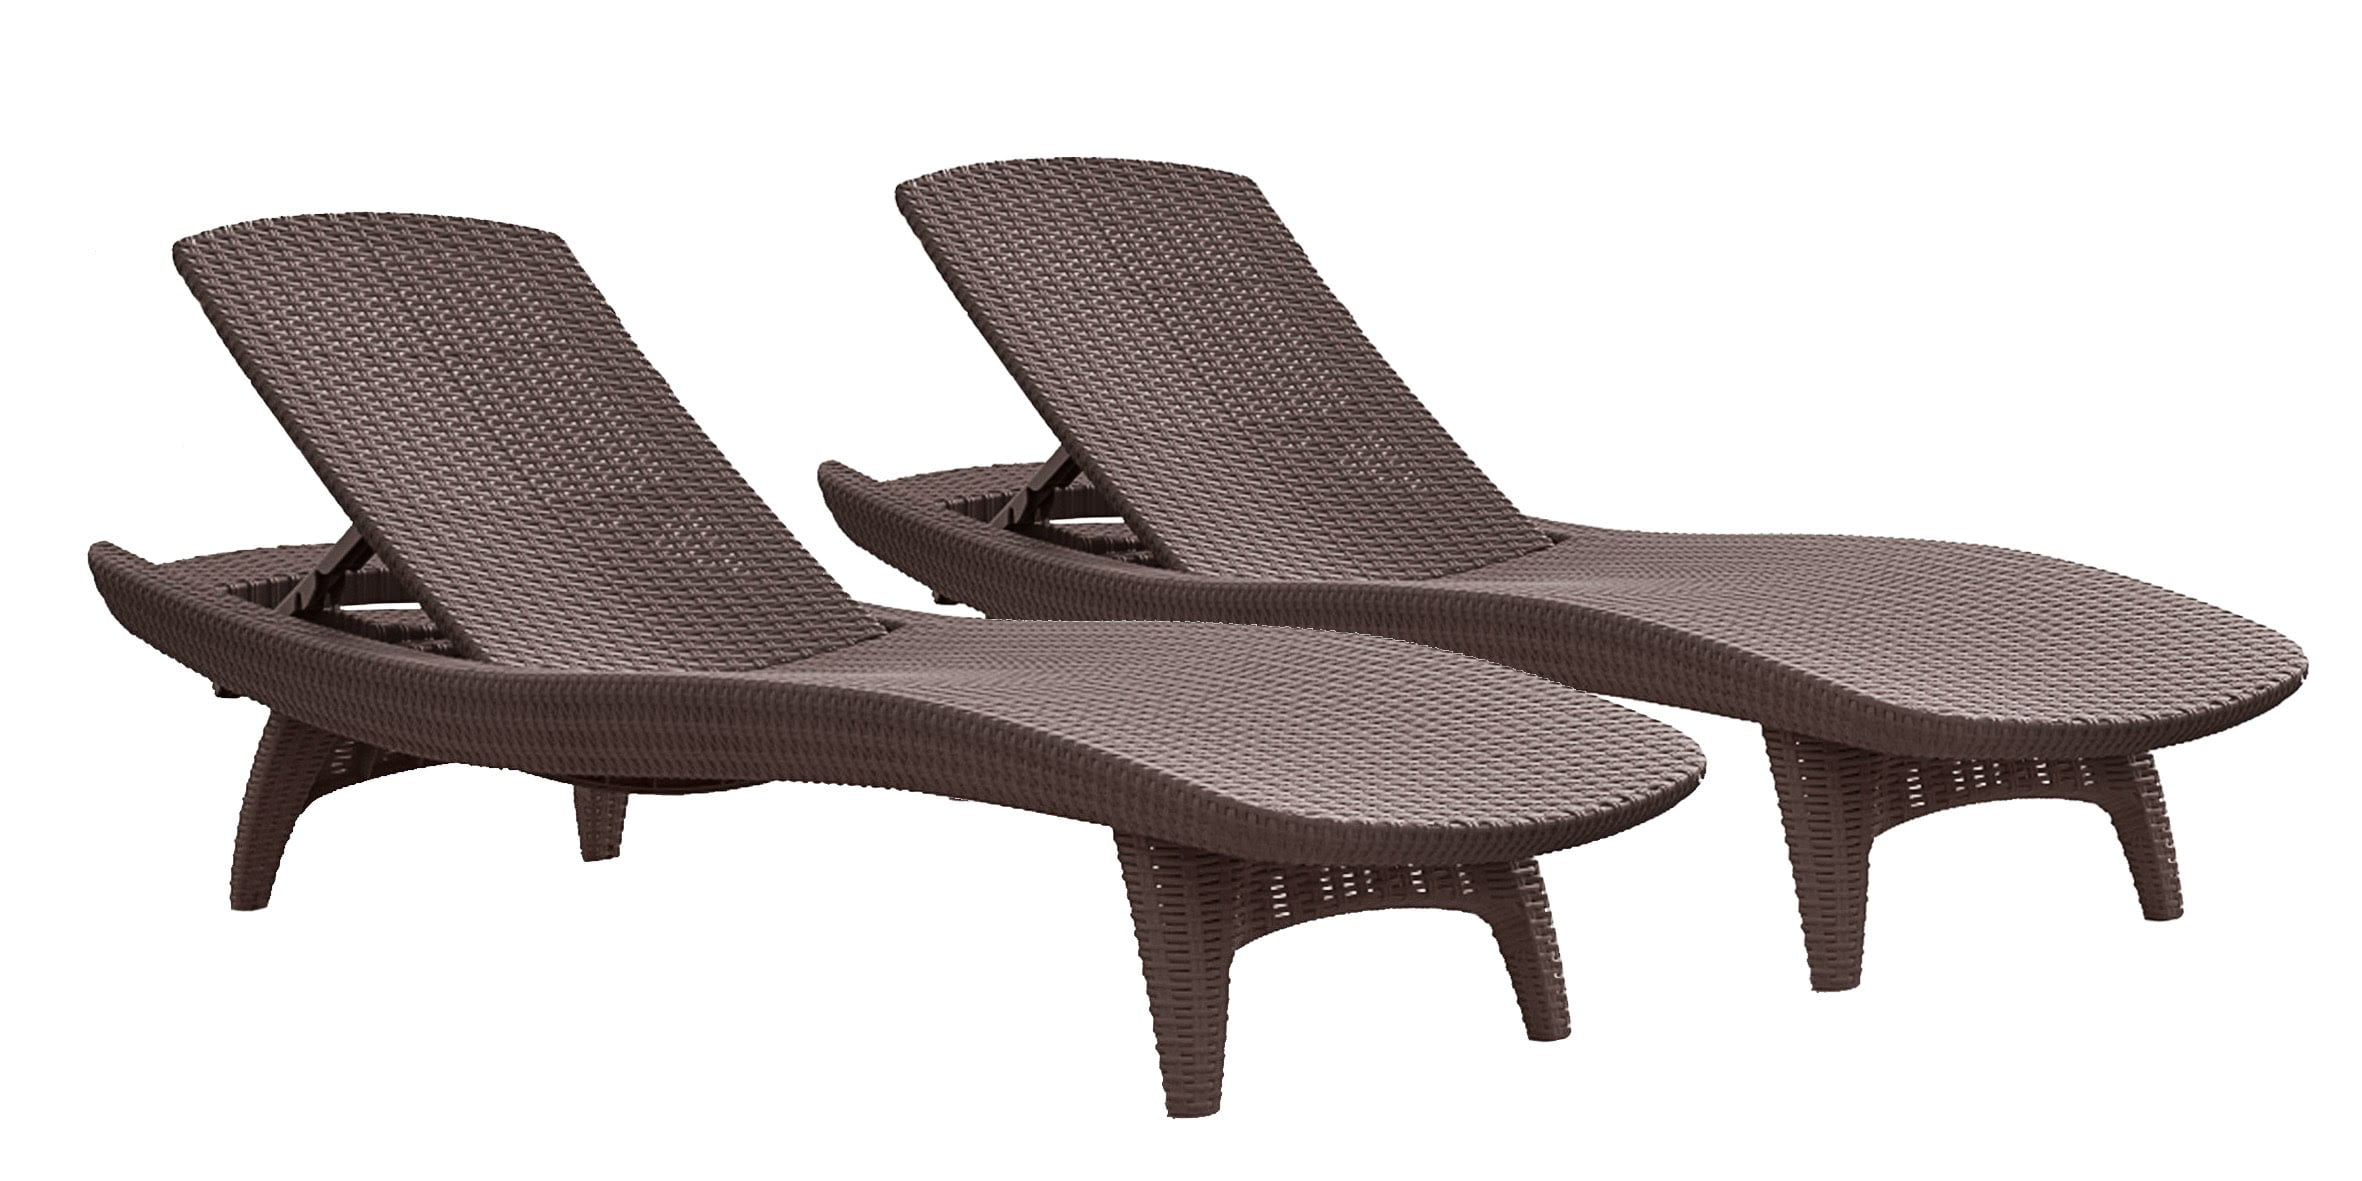 Keter Pacific Chaise Sun Lounger 2-Pack Adjustable, Brown by Keter